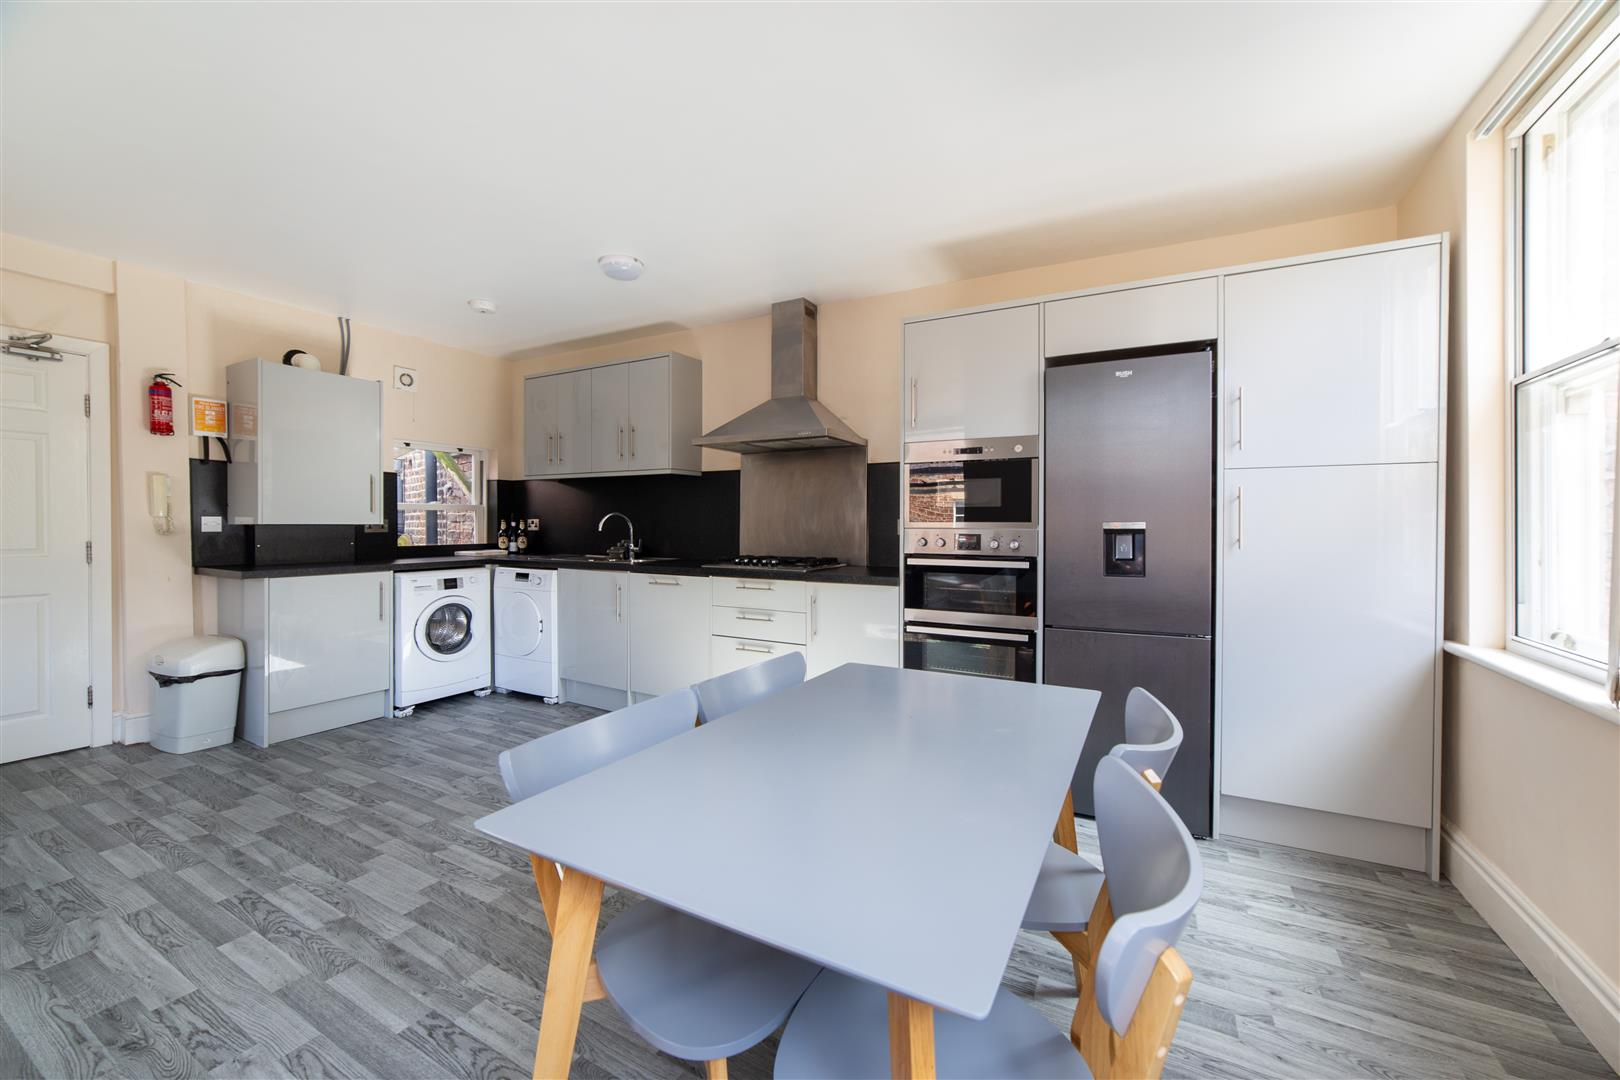 4 bed apartment to rent in Newcastle Upon Tyne, NE1 5XN, NE1